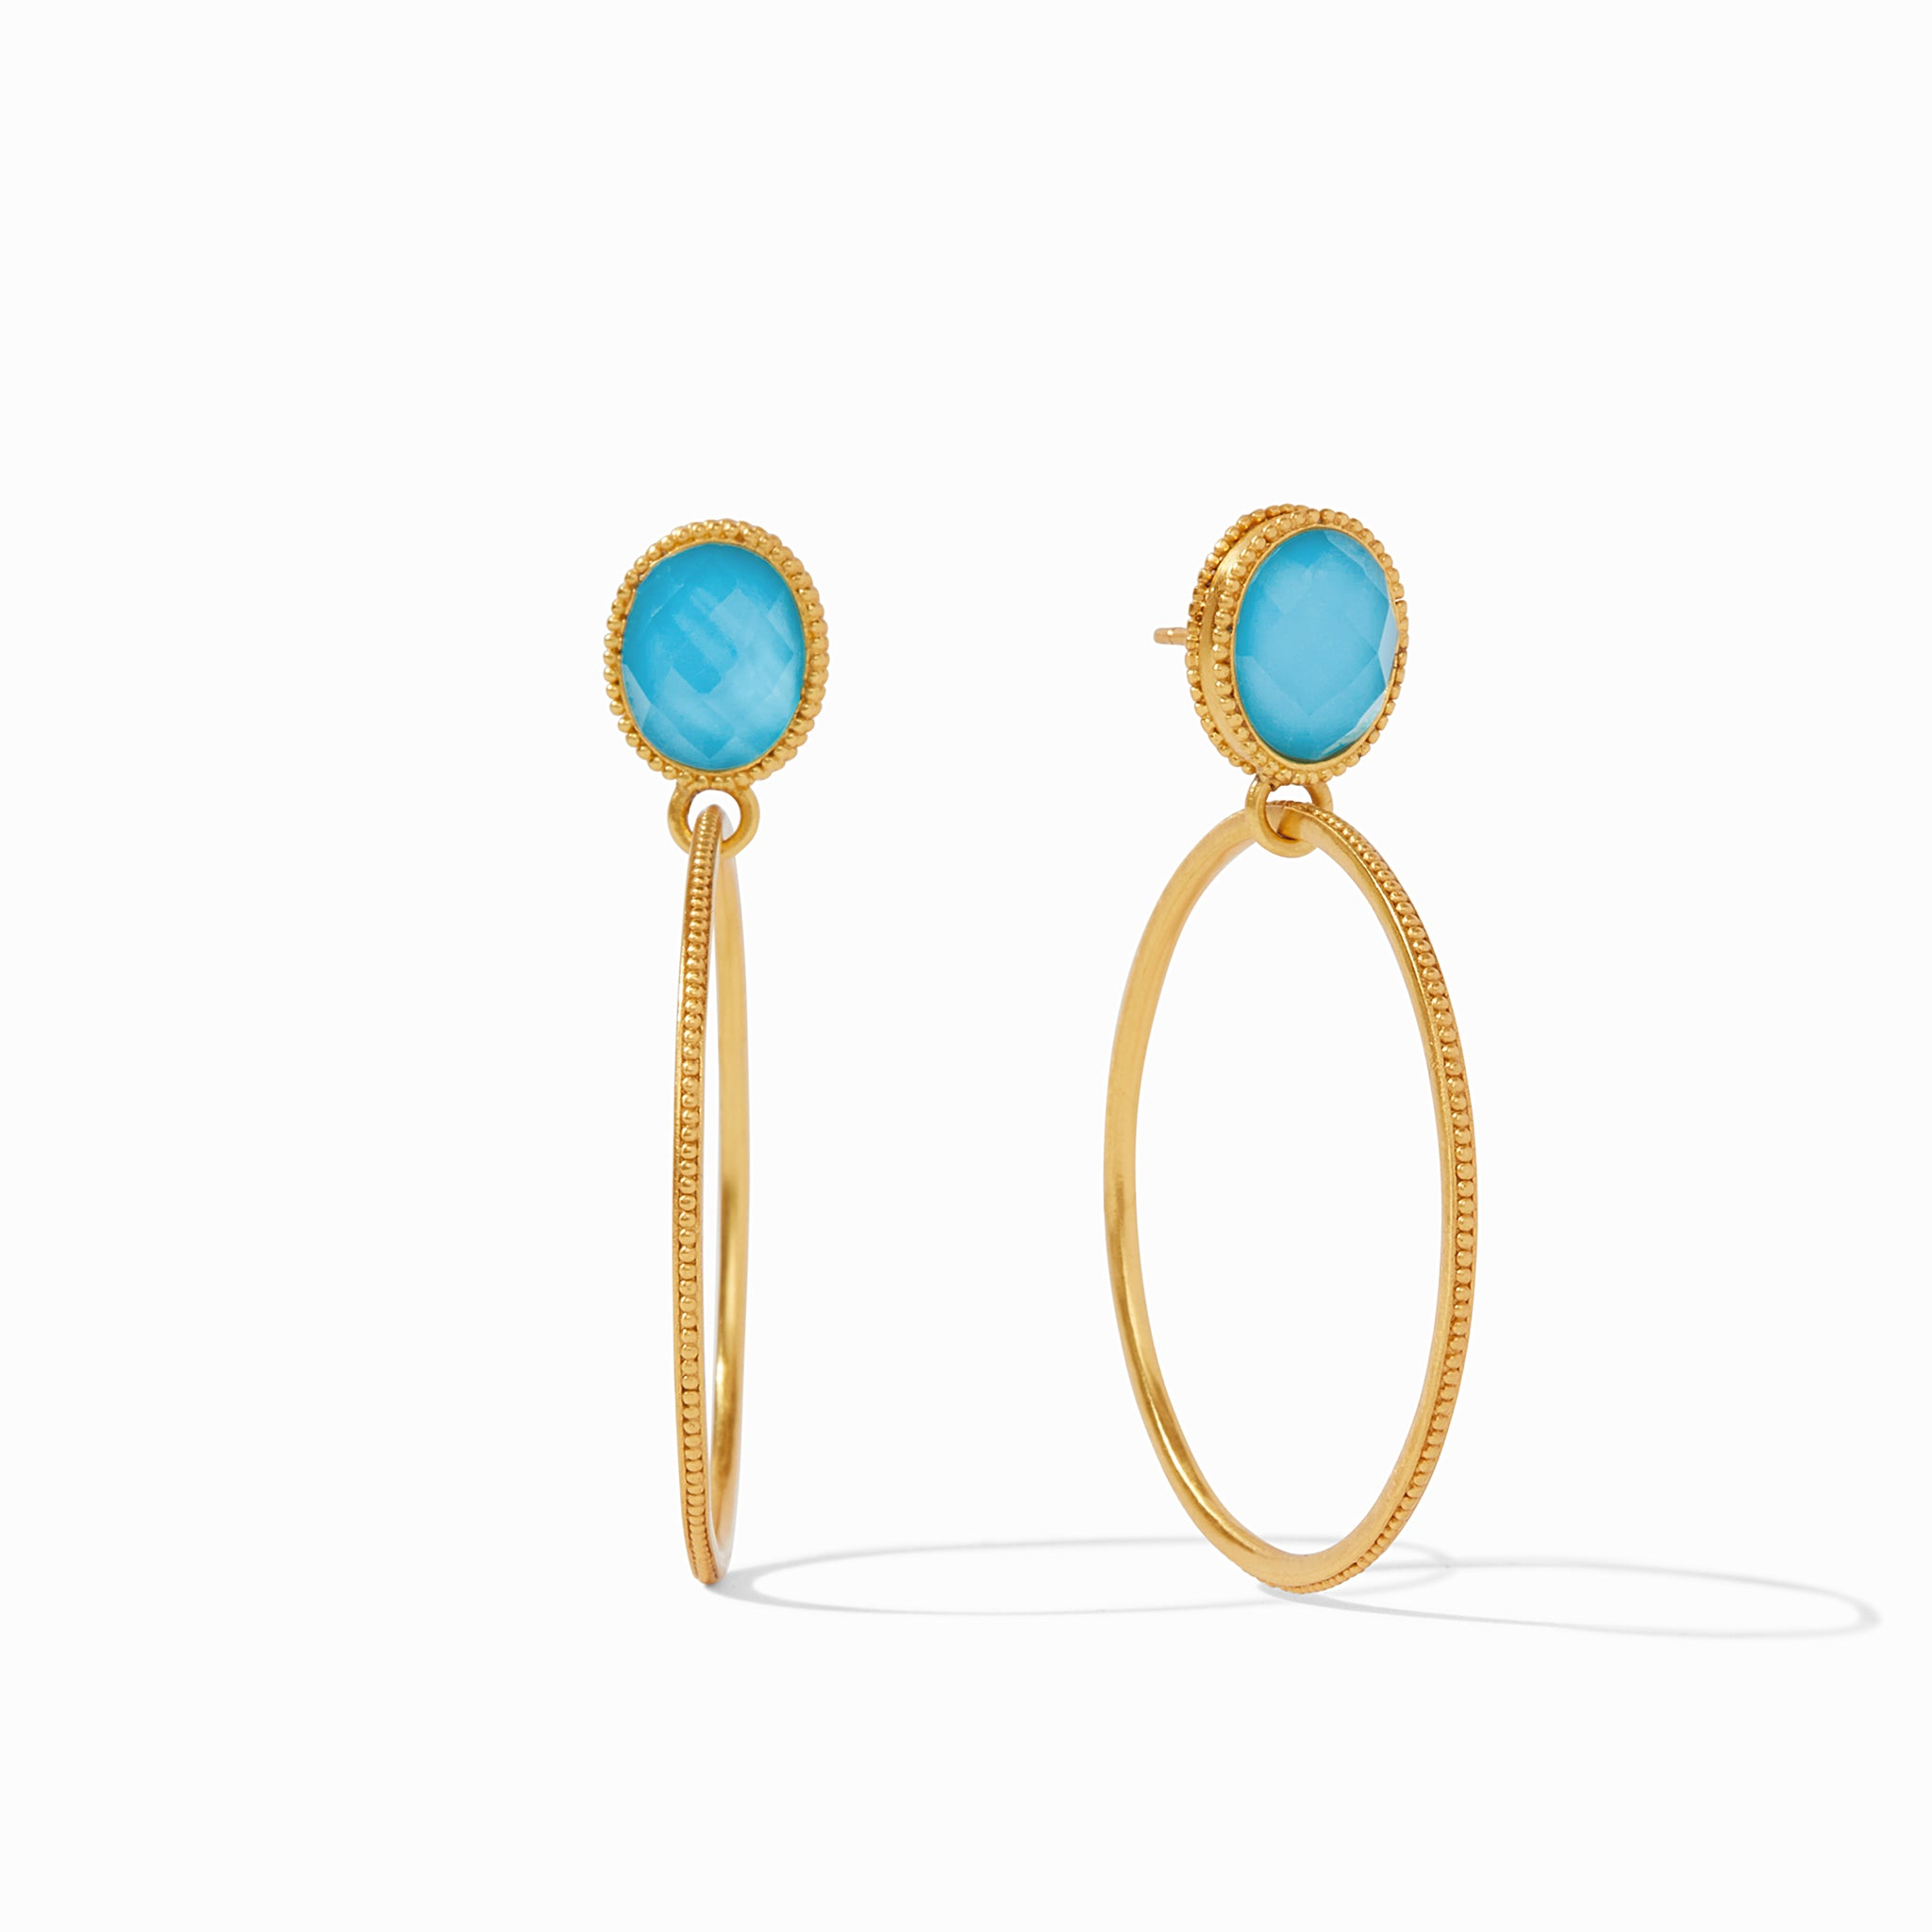 Iridescent Pacific Blue, Labor Day Looks, Pair Two, New Spring Jewels